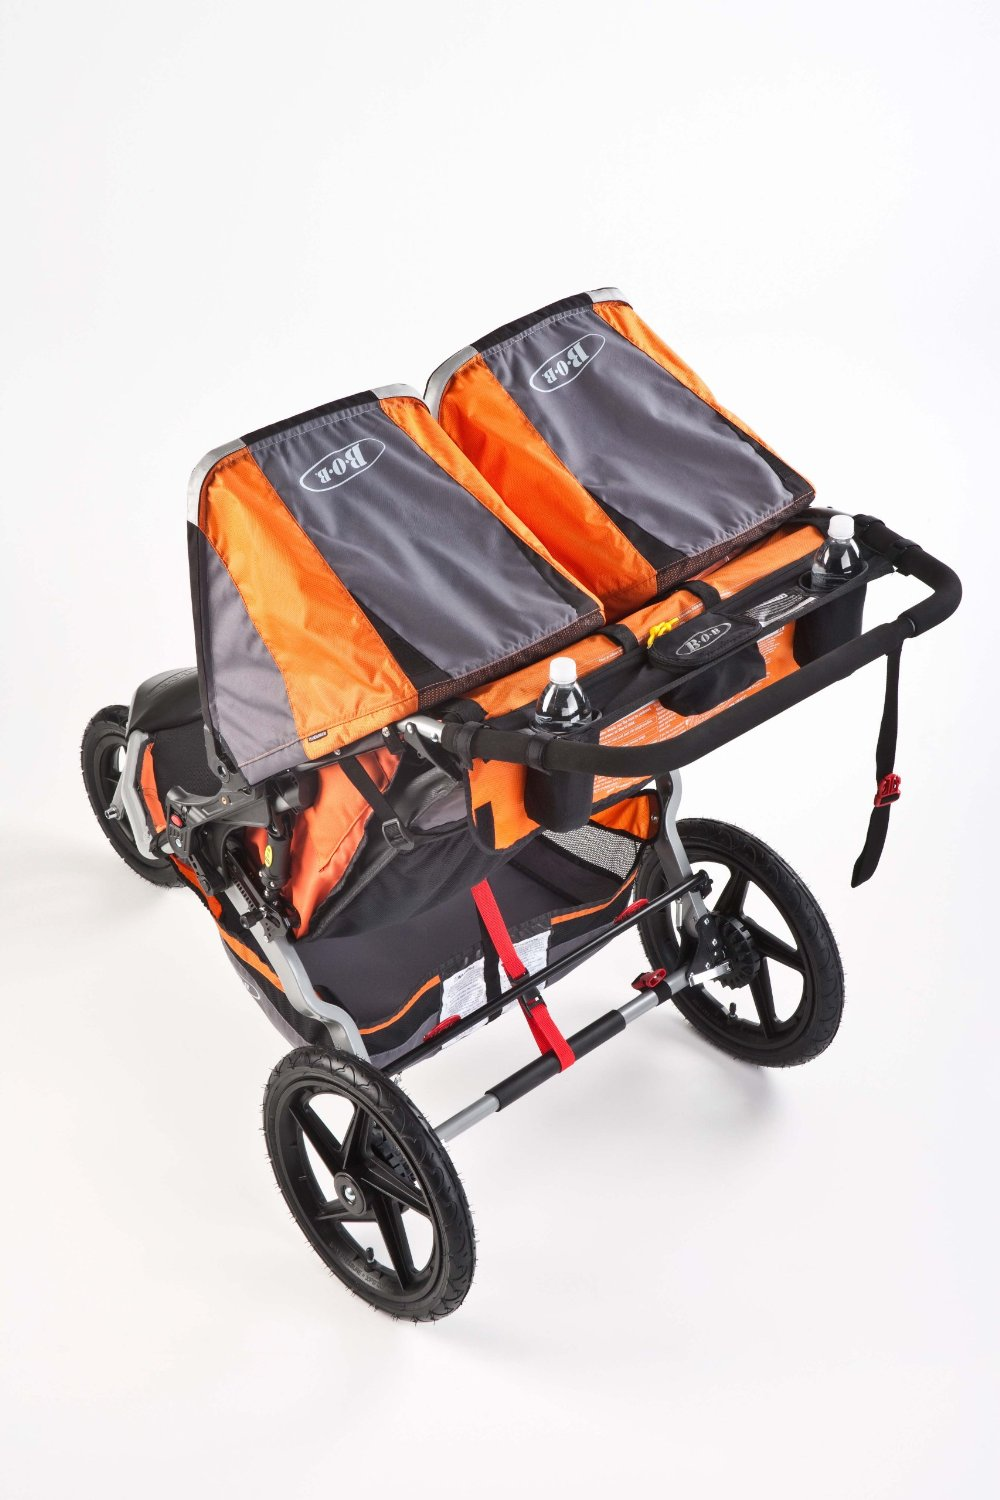 A Runner S Guide To Double Jogging Strollers Gaclren4n9